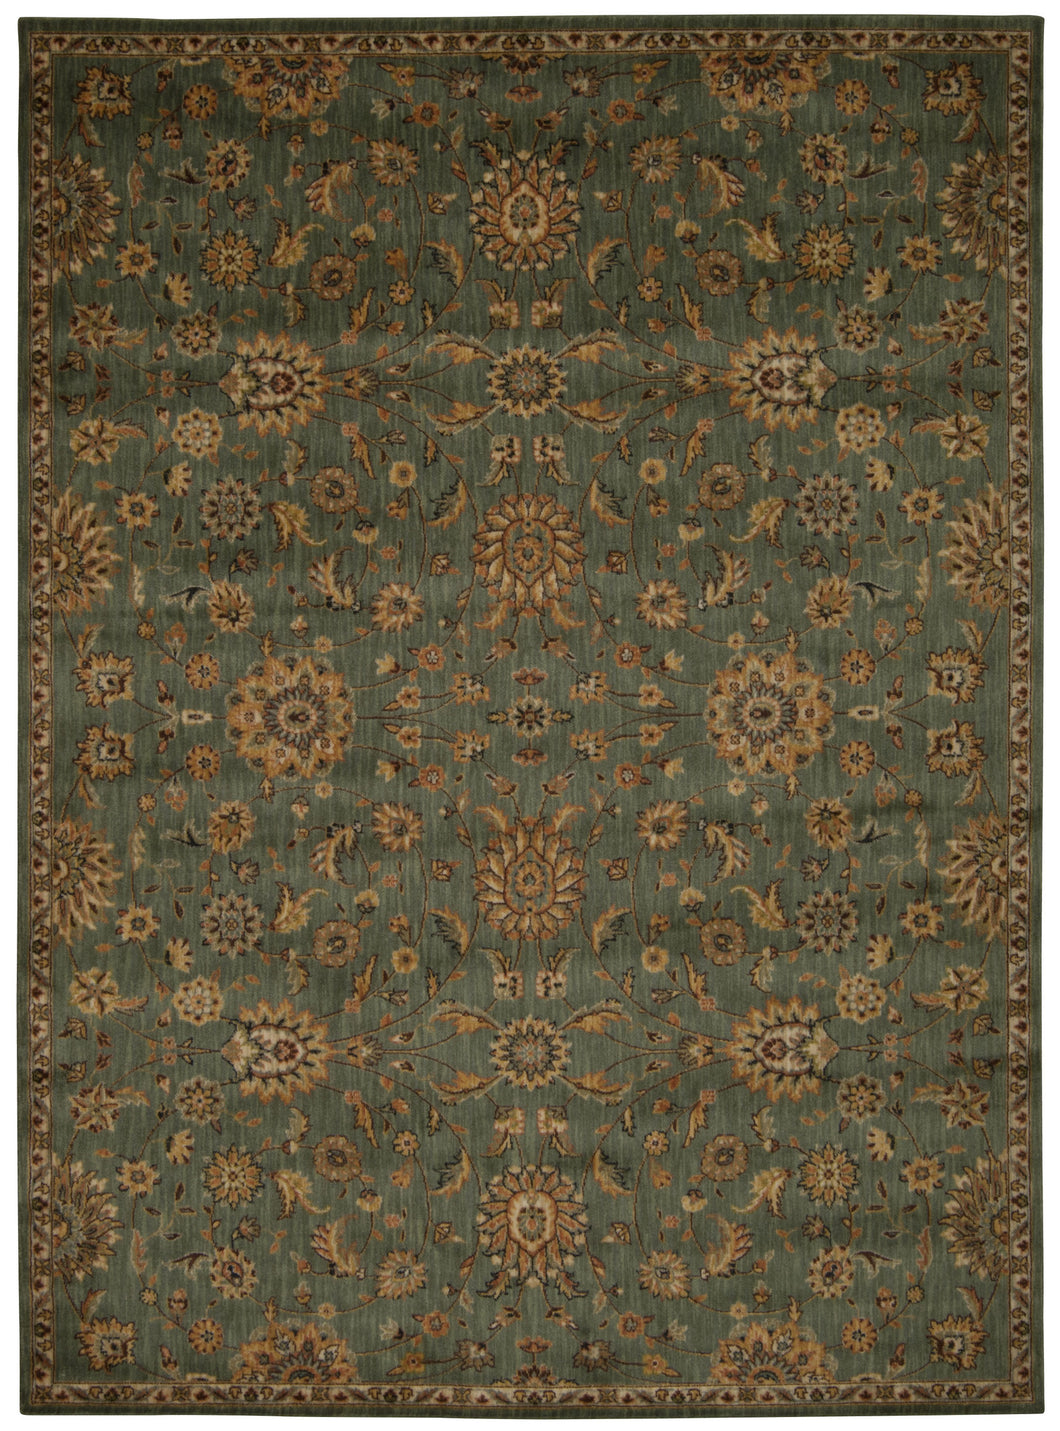 Kathy Ireland Ancient Times Ancient Treasures Teal Area Rug By Nourison BAB05 TL